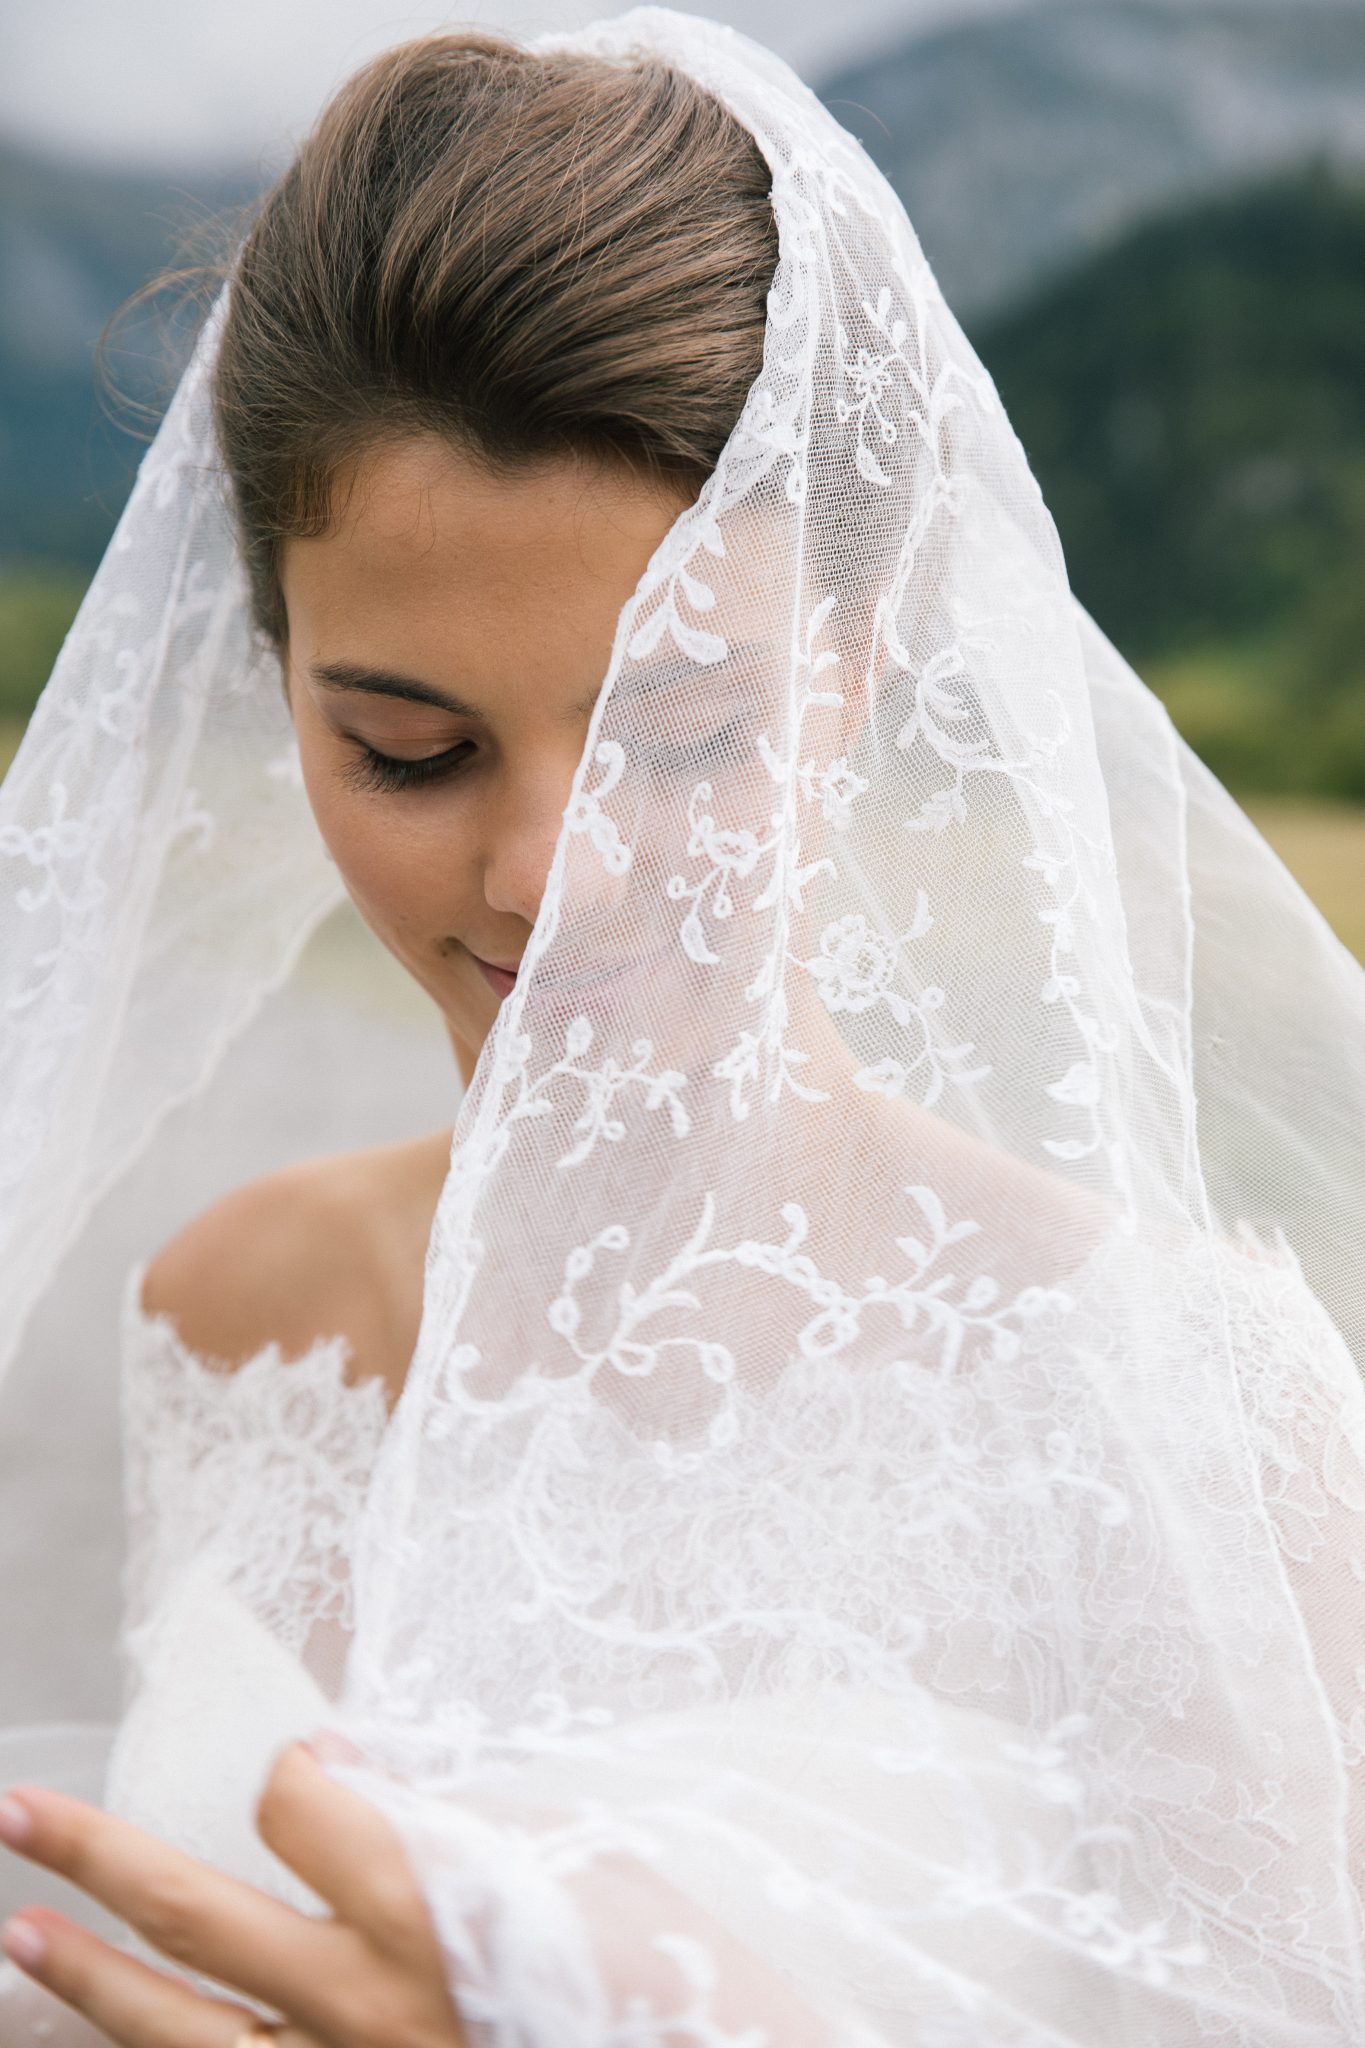 CHARLOTTE'S TRADITIONAL WEDDING IN SWITZERLAND